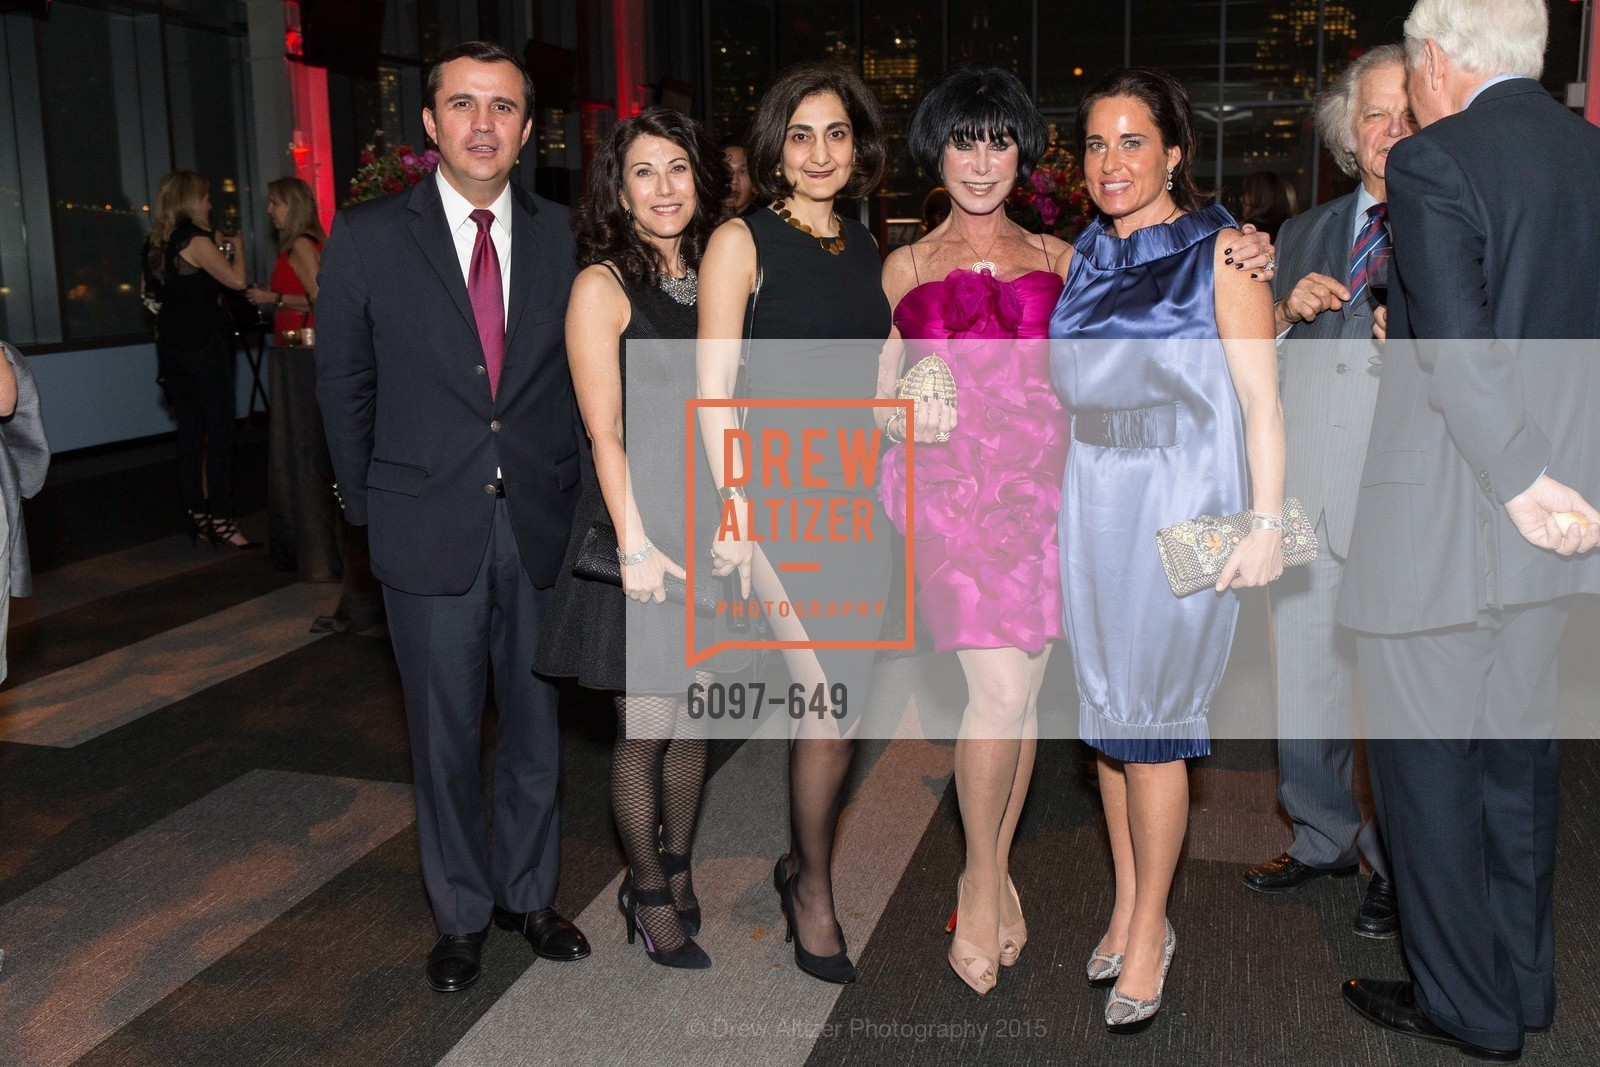 Jorge Jaramillo, Adrienne Mally, Fati Farmanfarmaian, Marilyn Cabak, Natalia Urrutia, Fashion Forward: An Evening with Erdem presented by SF Opera Guild and Saks Fifth Avenue, Pier 27. Pier 27, The Embarcadero, March 25th, 2015,Drew Altizer, Drew Altizer Photography, full-service agency, private events, San Francisco photographer, photographer california